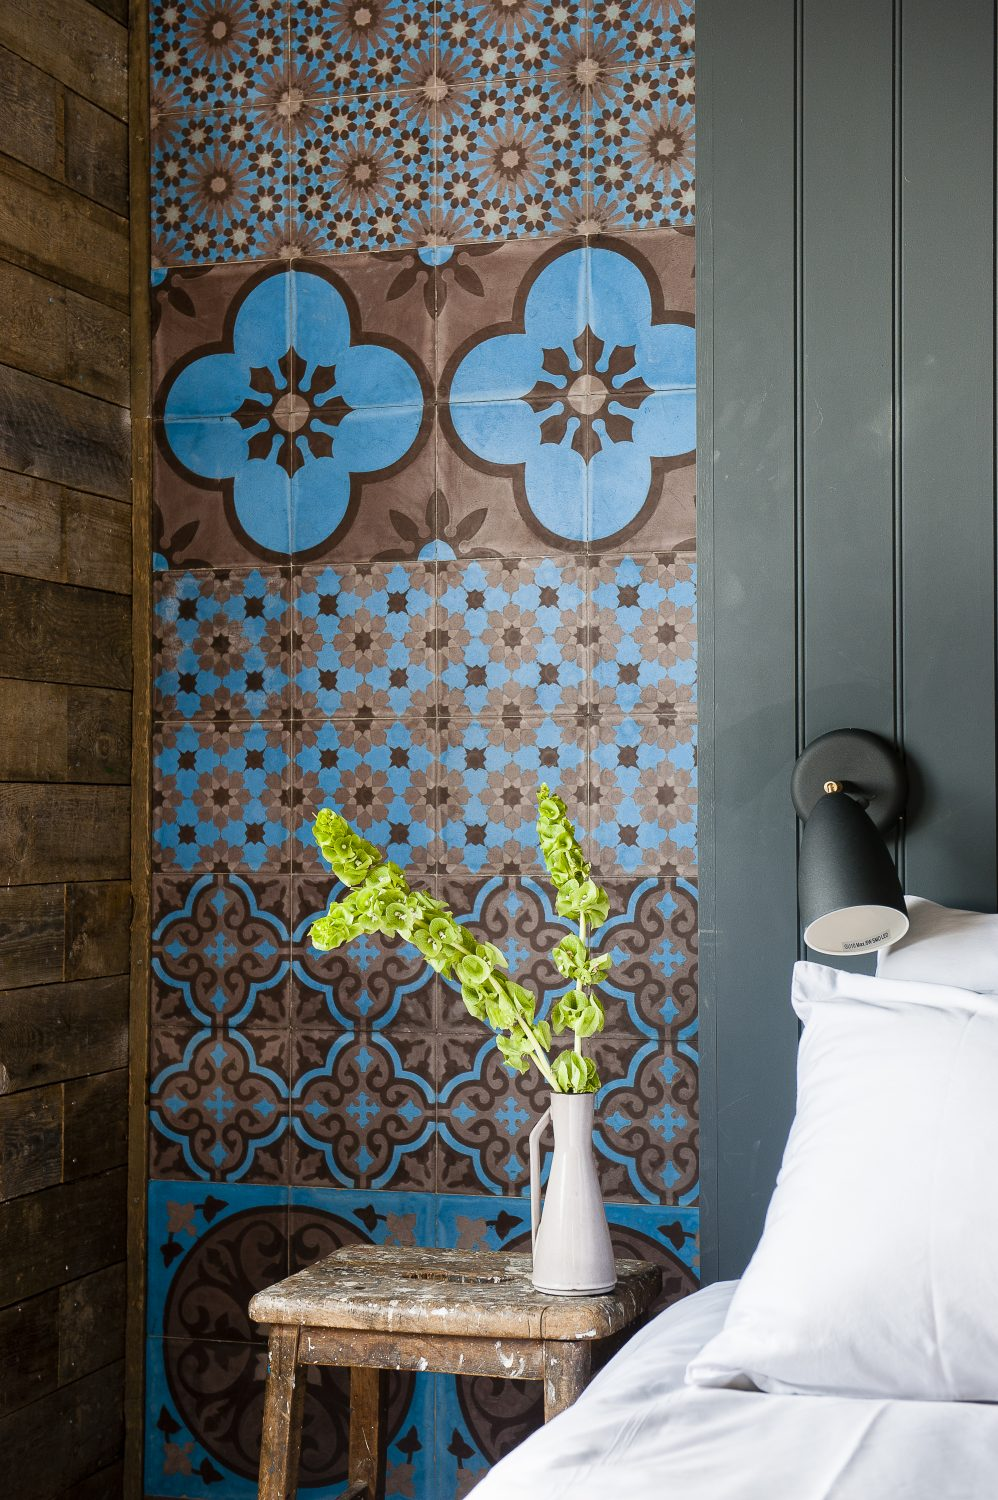 John and Anna built the guest cabin from scratch. Decorative tiles on either side of the bed were sourced by Anna from Emery et Cie in Belgium